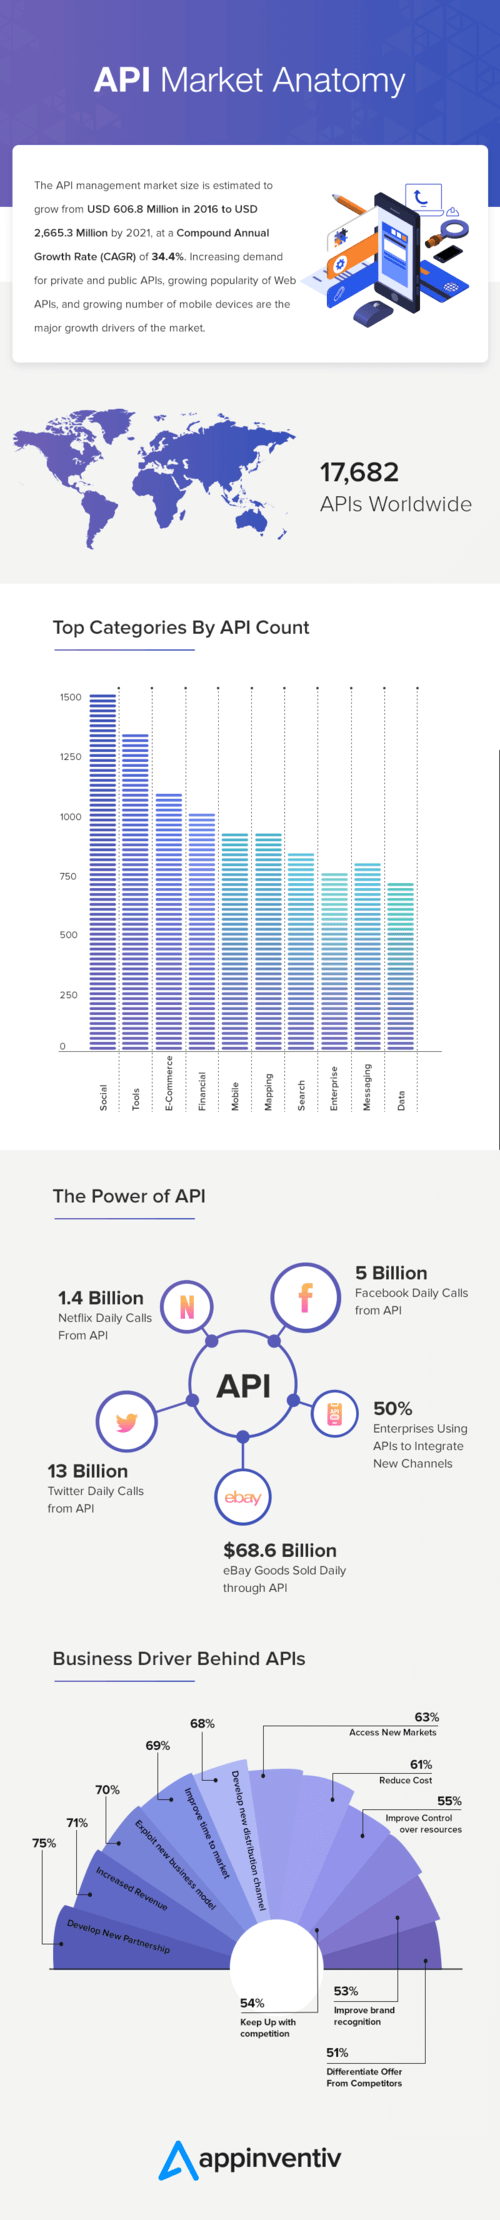 API Market Anatomy via Smith Johnes